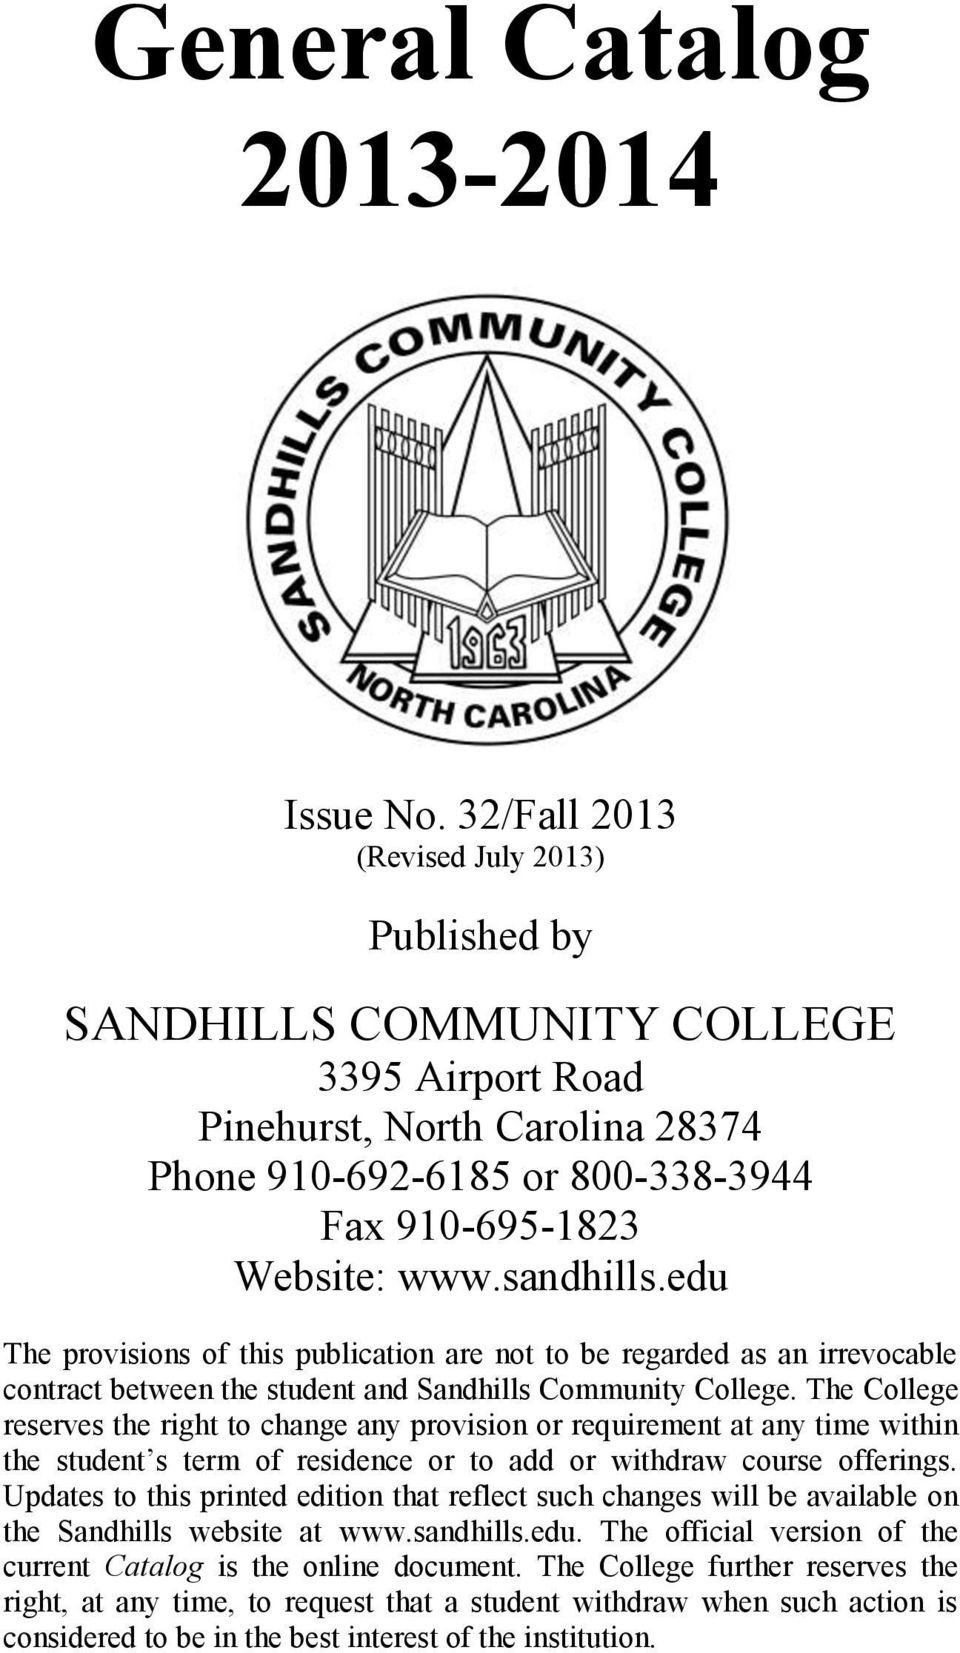 edu The provisions of this publication are not to be regarded as an irrevocable contract between the student and Sandhills Community College.